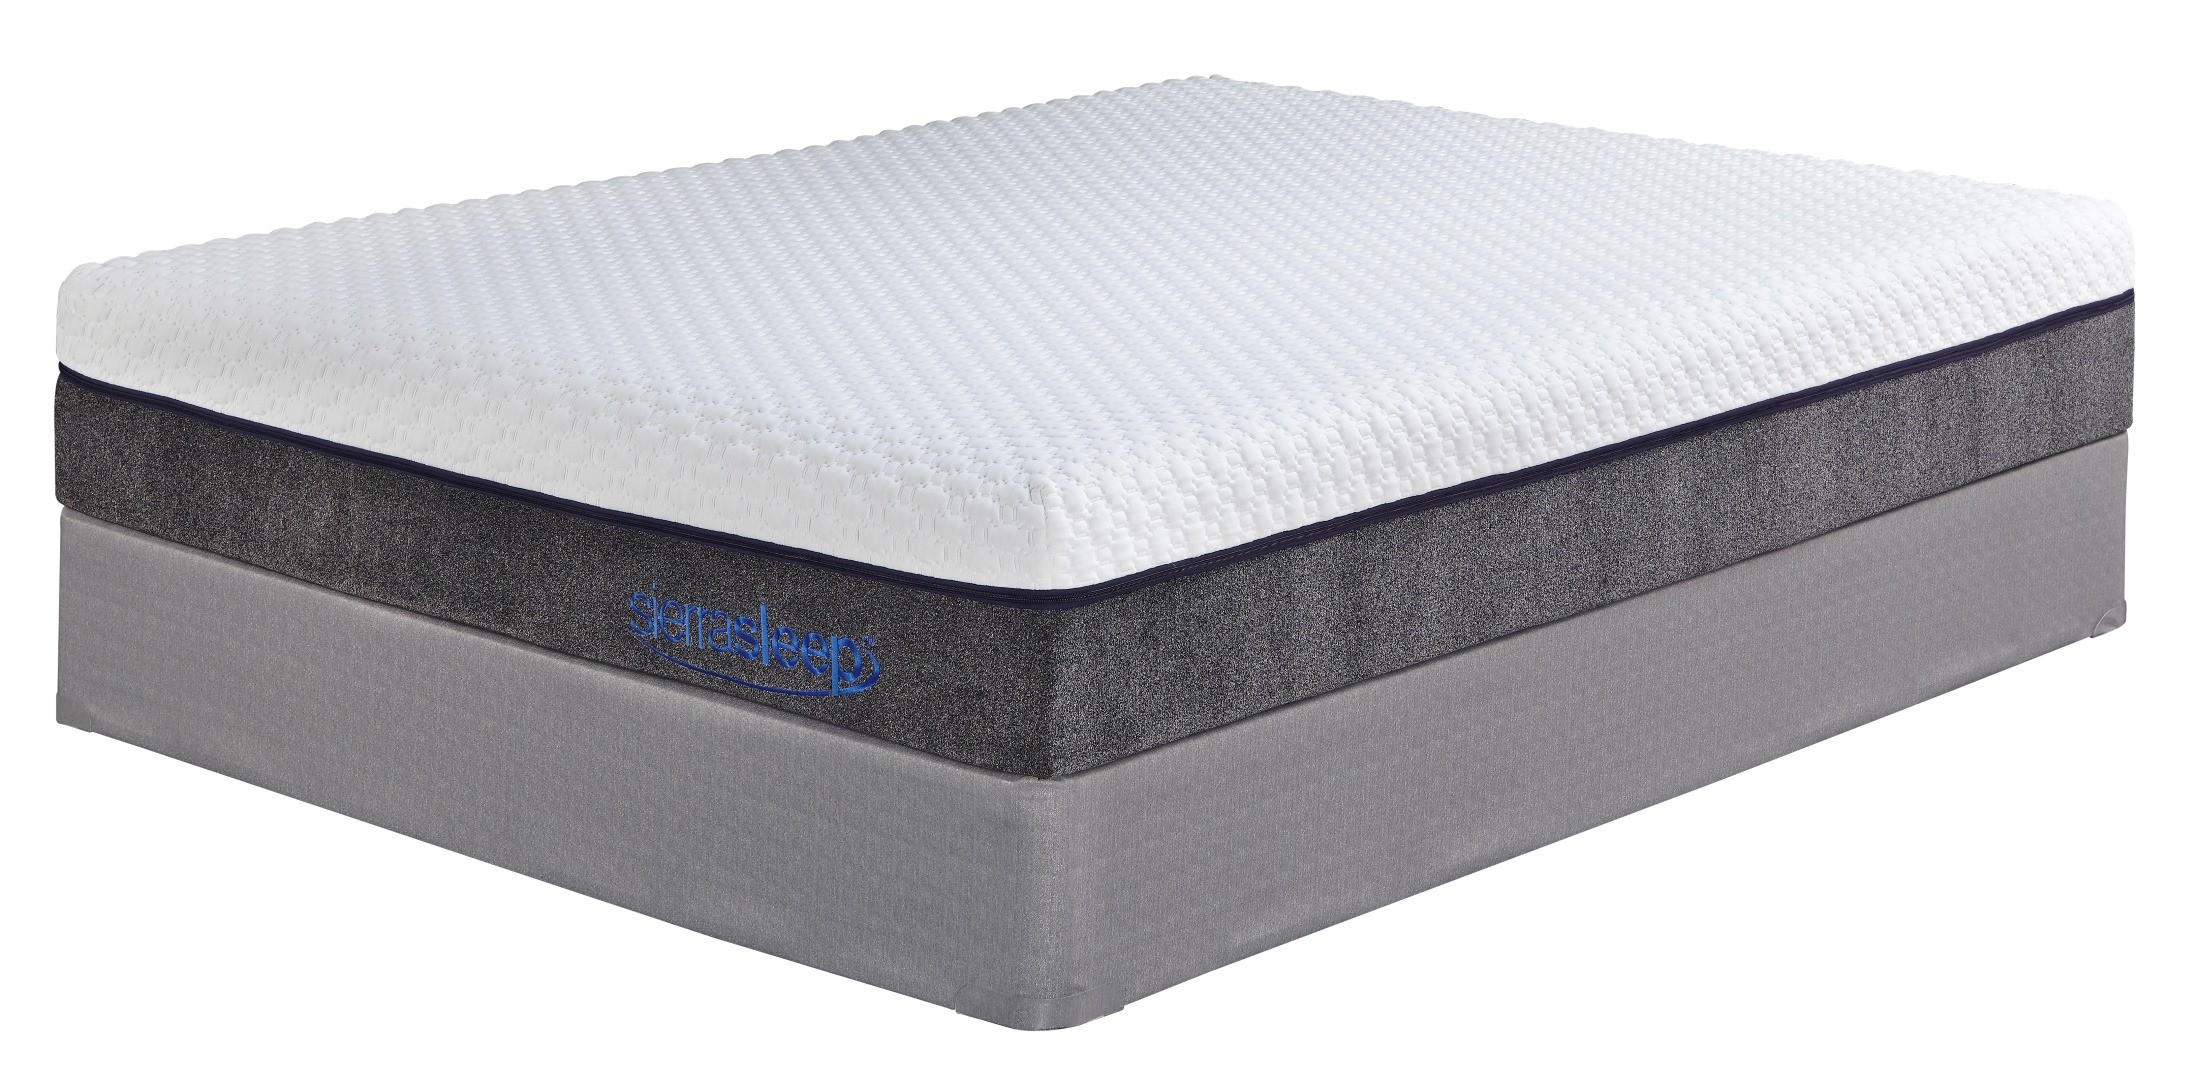 11 Import Innerspring White Twin Mattress With Foundation M82611 M81x12 Ashley